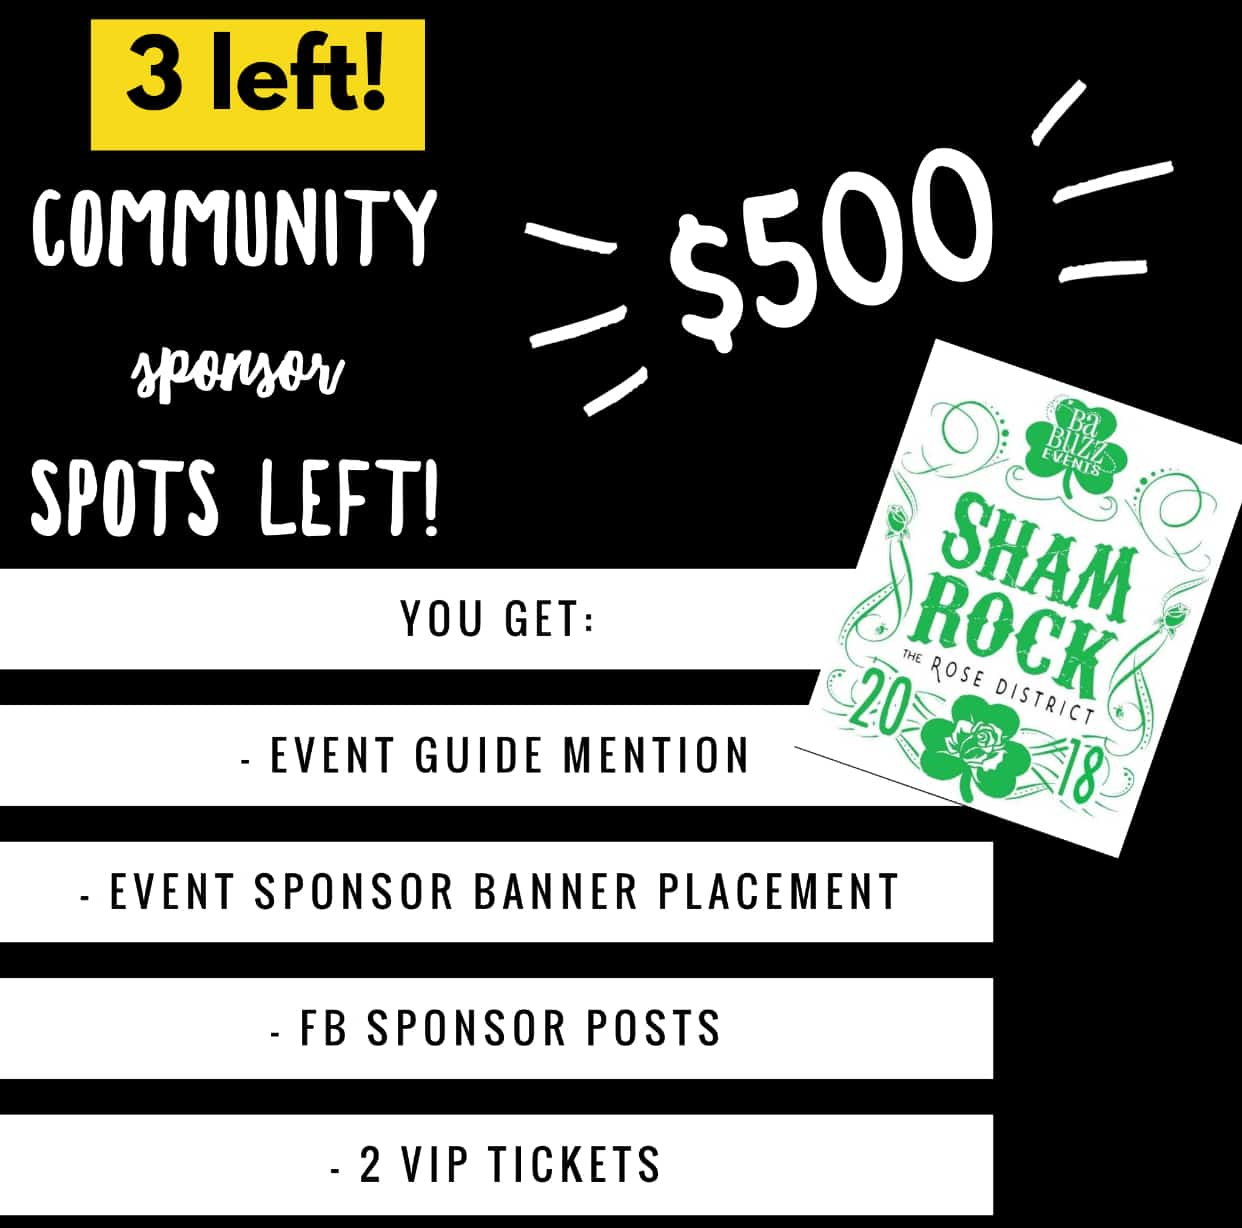 3 Community Sponsor Spots Left for ShamROCK!